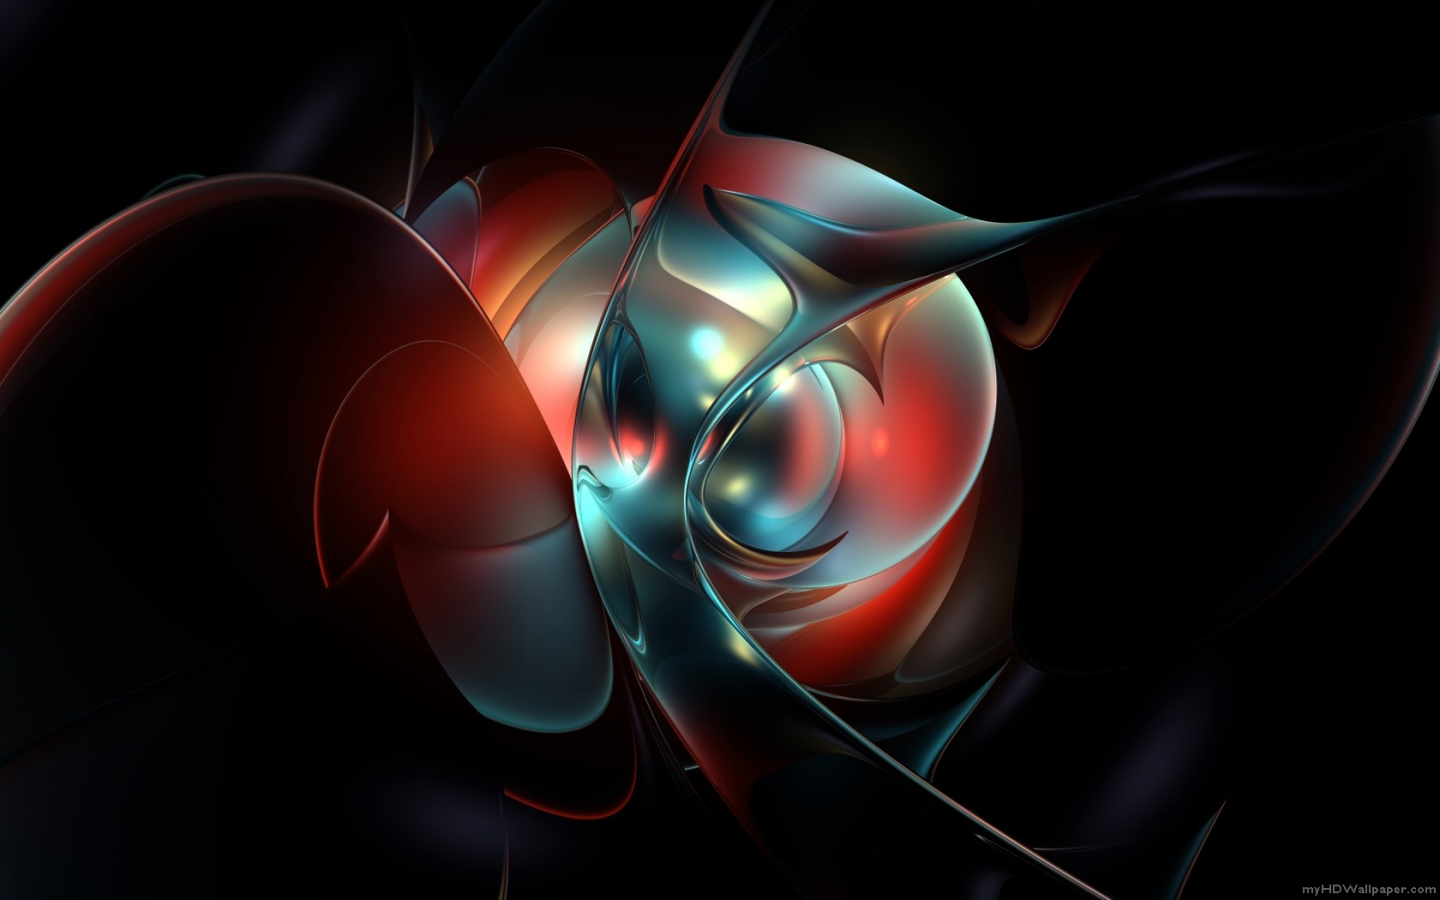 http://2.bp.blogspot.com/-i4LpAX7MM2o/UKq6gBJ73qI/AAAAAAAADO4/GNq6VapWQH8/s1600/top-desktop-abstract-wallpaper-art.jpg